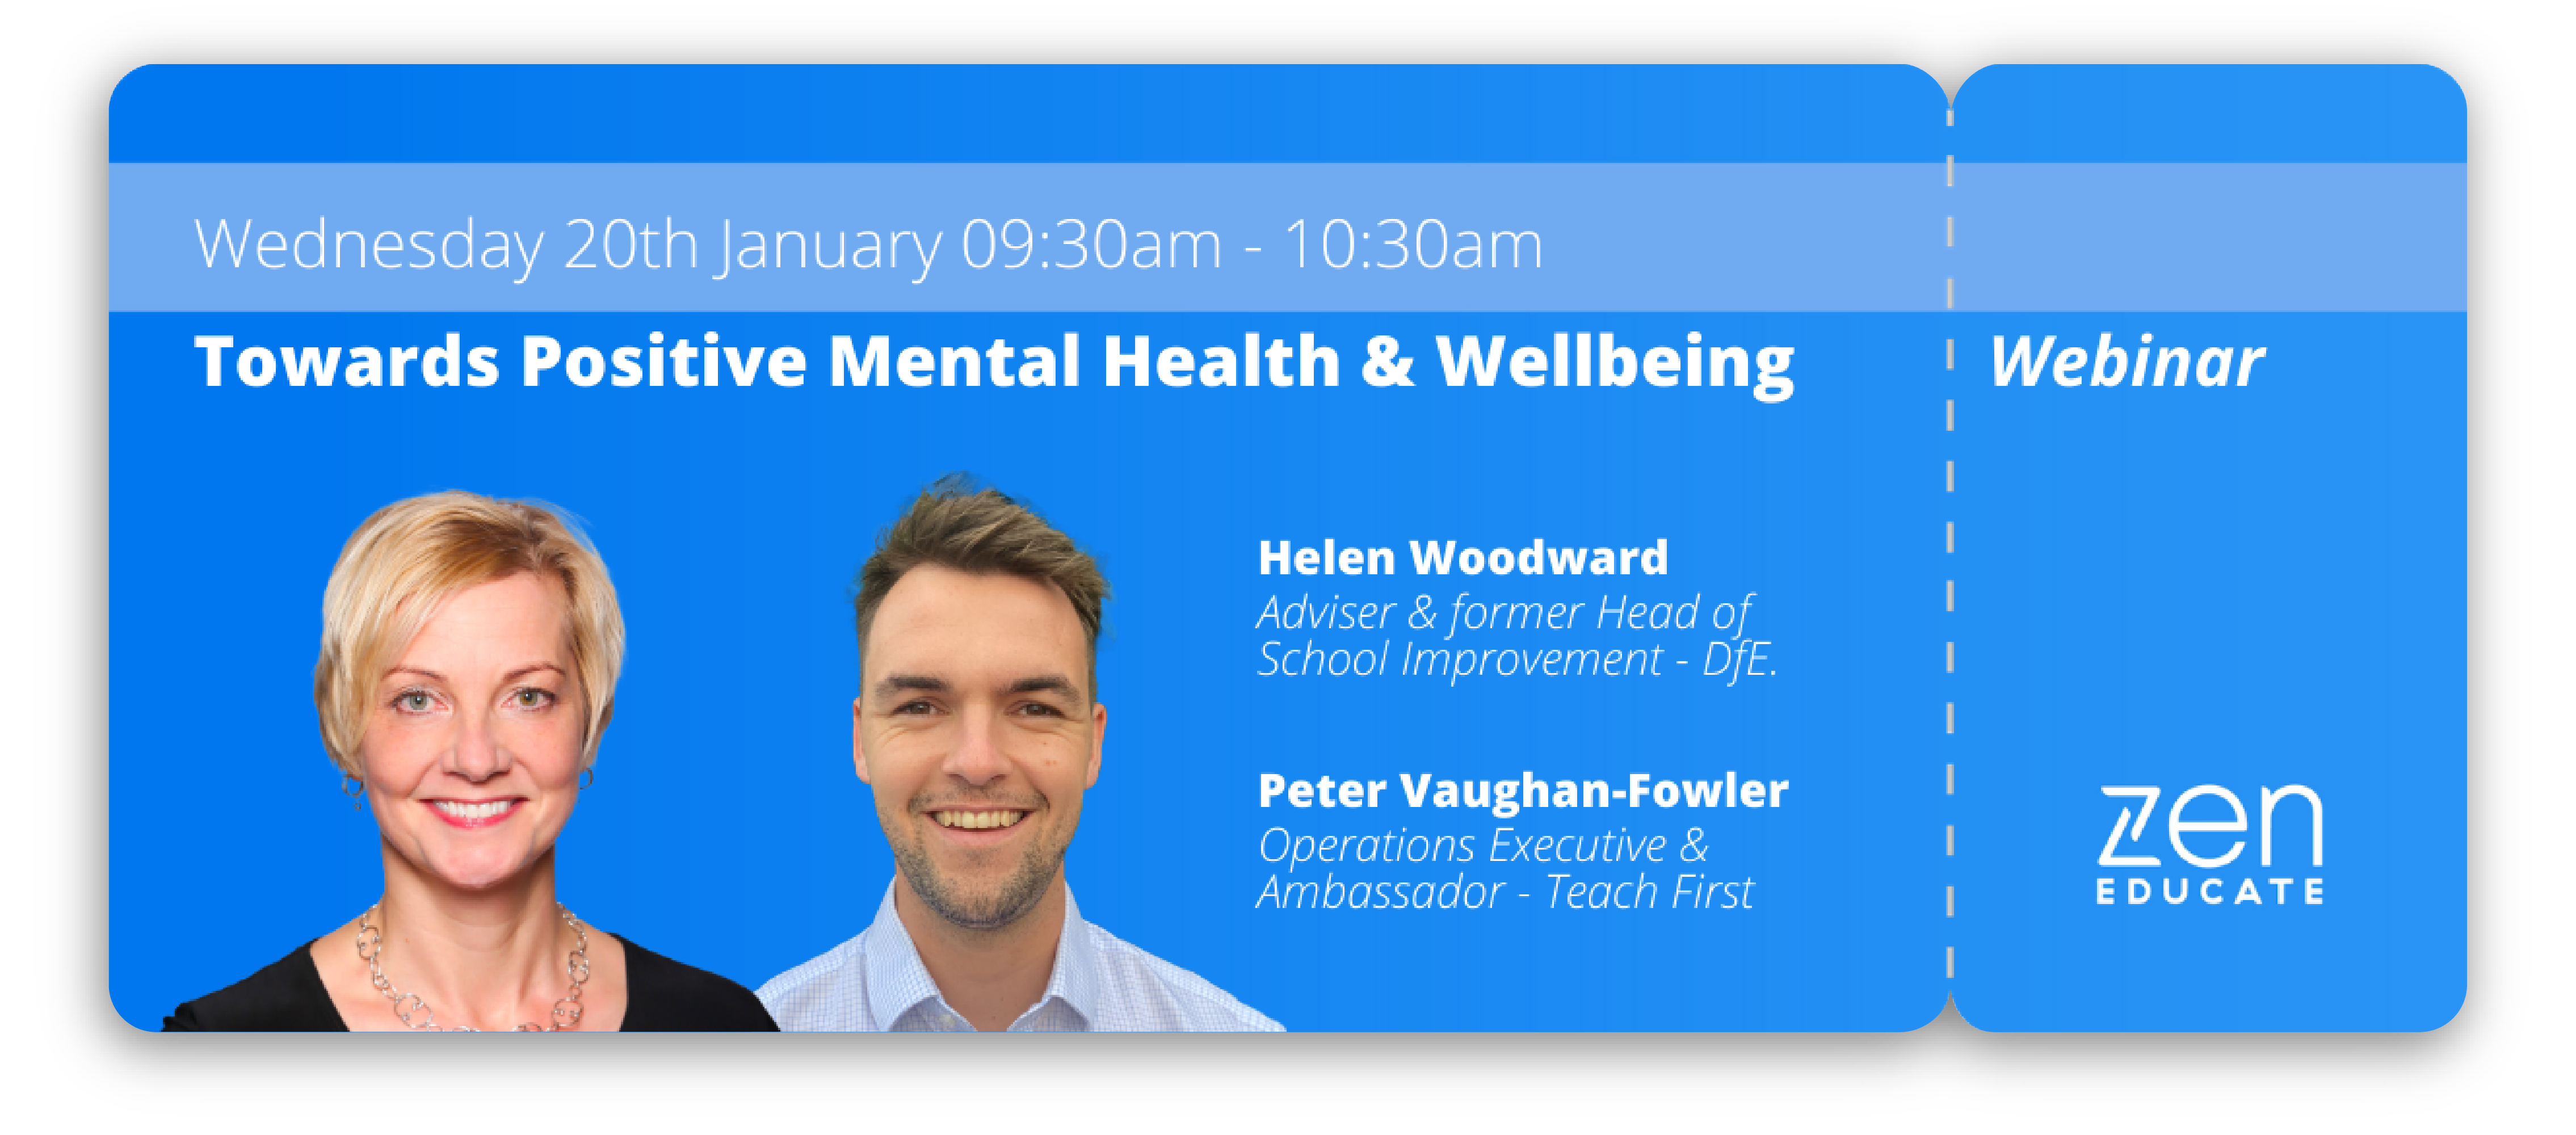 Towards Positive Mental Health and Wellbeing: Key insights from our webinar